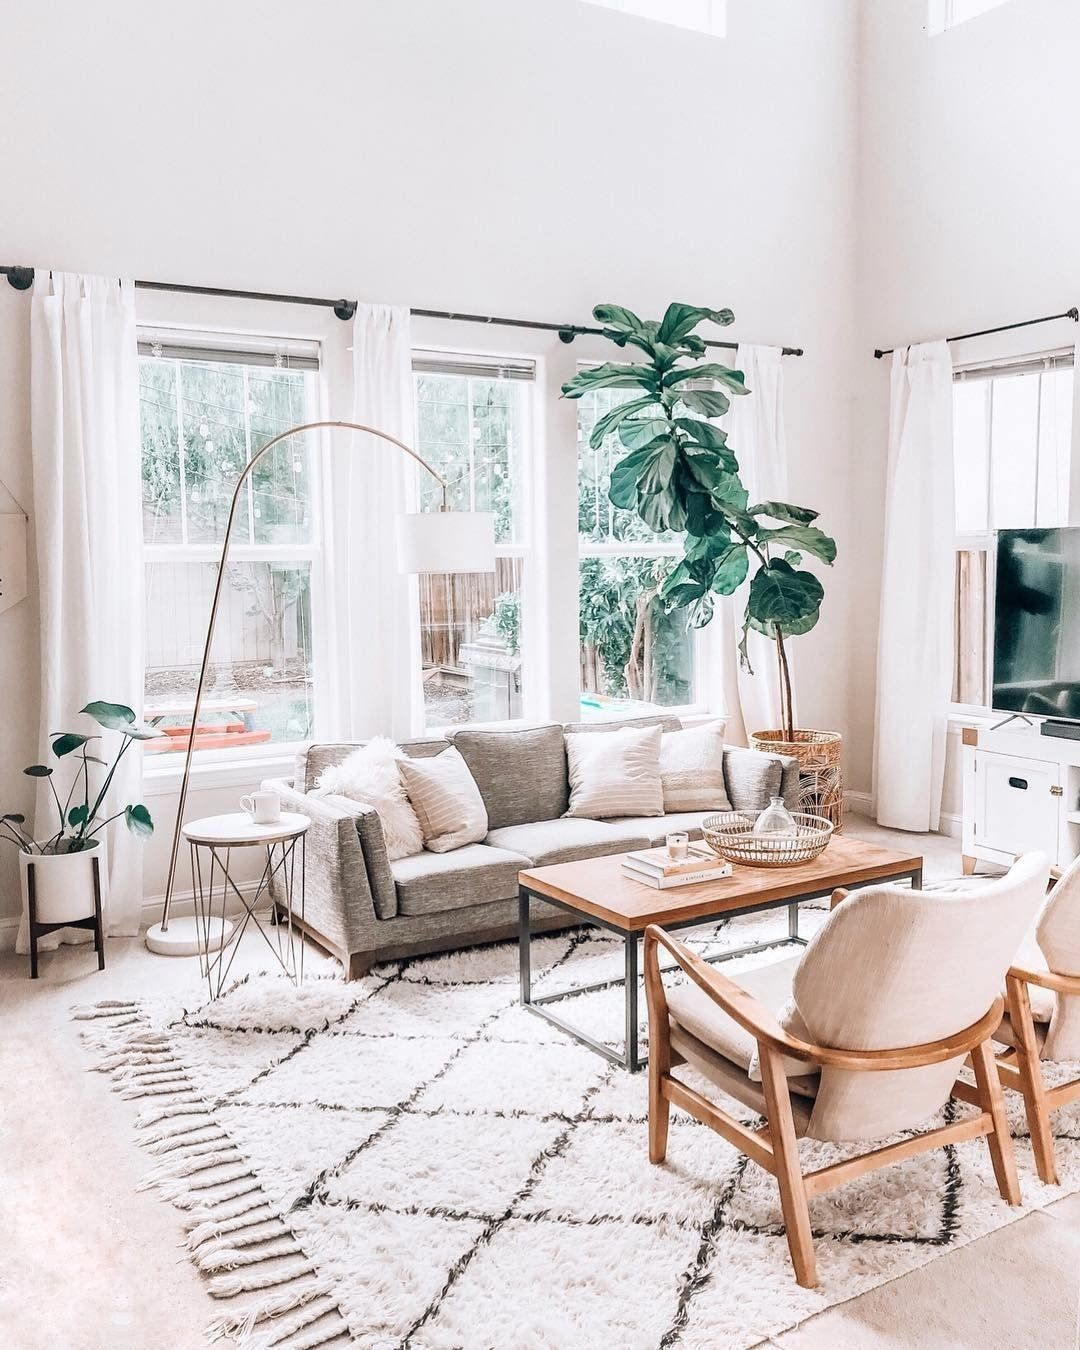 This Scandinavian Design Brightens Up The Space With Natural Wood And Light Colors Mixed With Minimalist Living Room Living Room Scandinavian Boho Living Room #scandi #boho #living #room